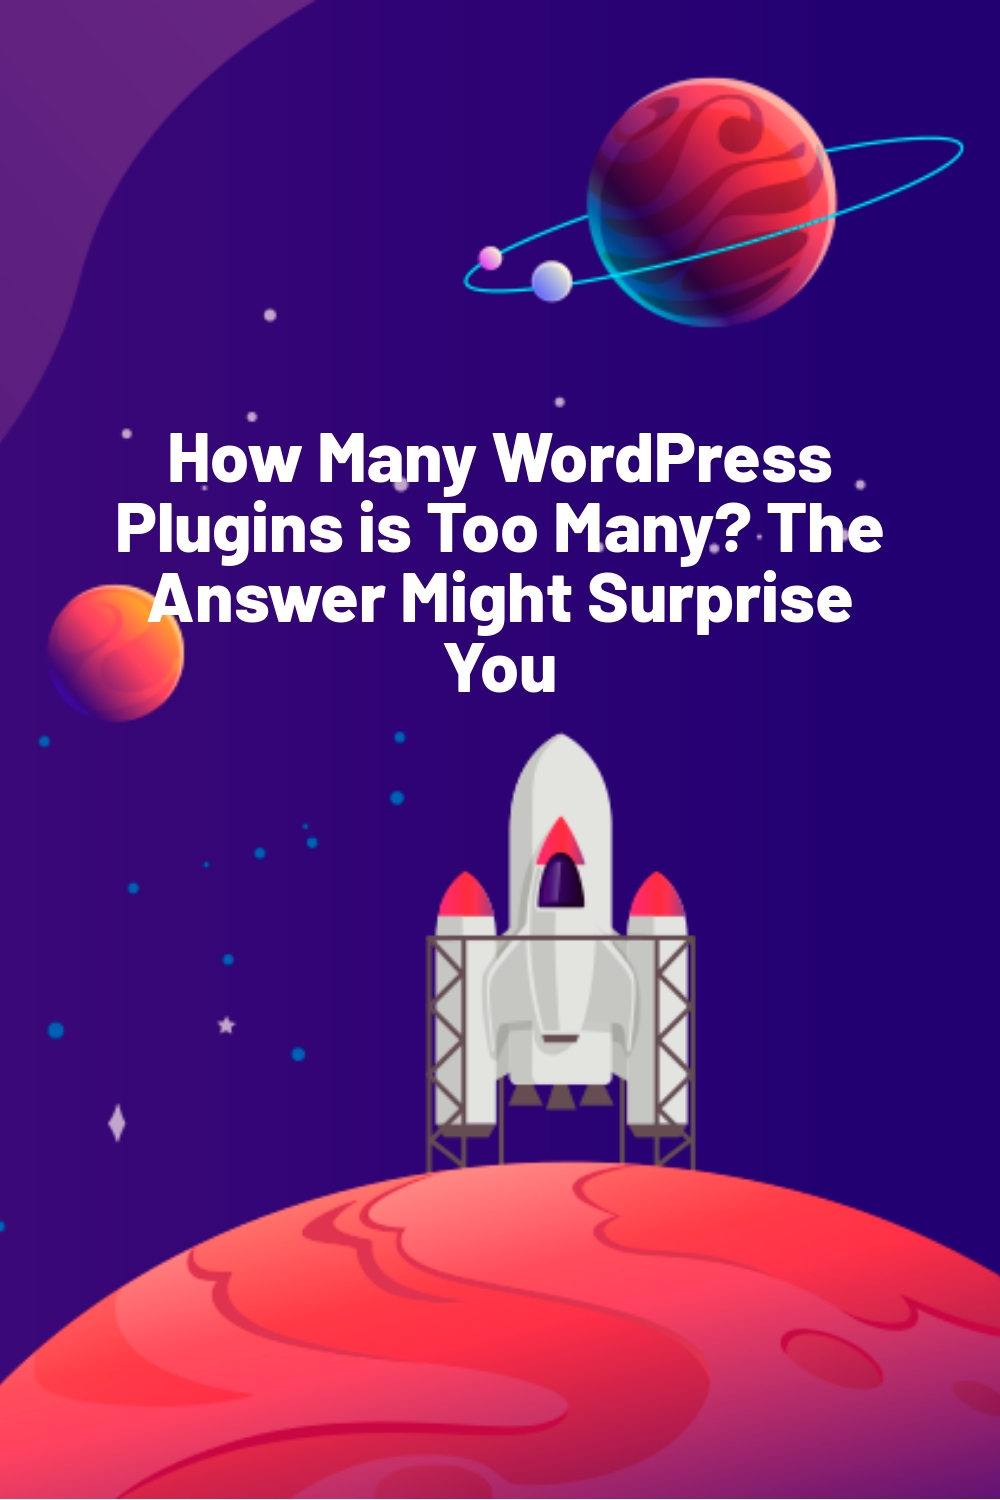 How Many WordPress Plugins is Too Many? The Answer Might Surprise You